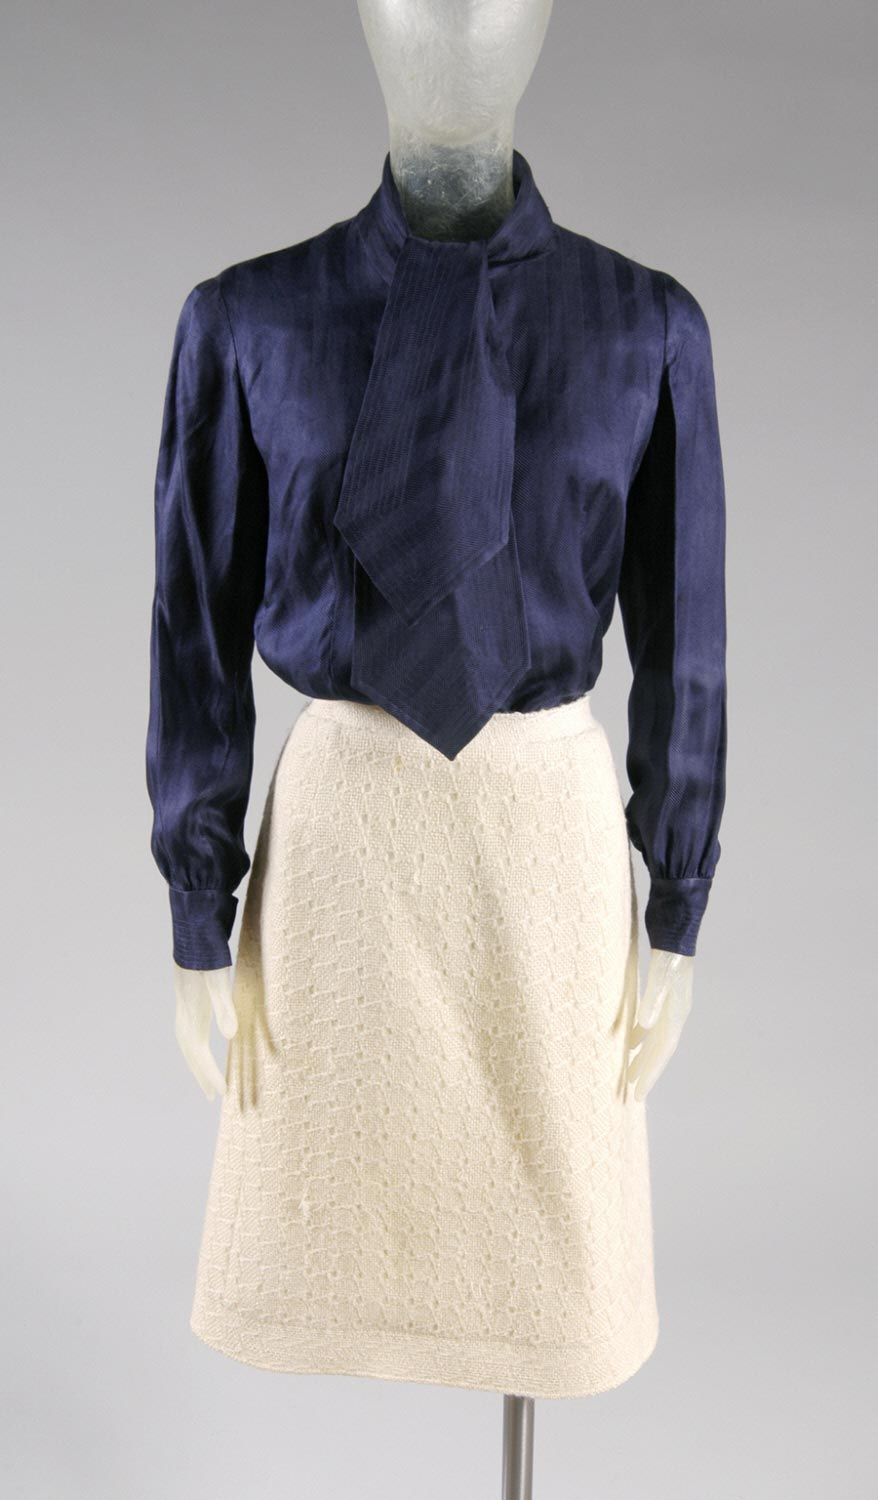 Woman's suit: jacket, skirt, blouse and tie | Designer: Hubert de Givenchy | France, 1968 | Materials: ivory wool, blue silk | Philadelphia Museum of Art